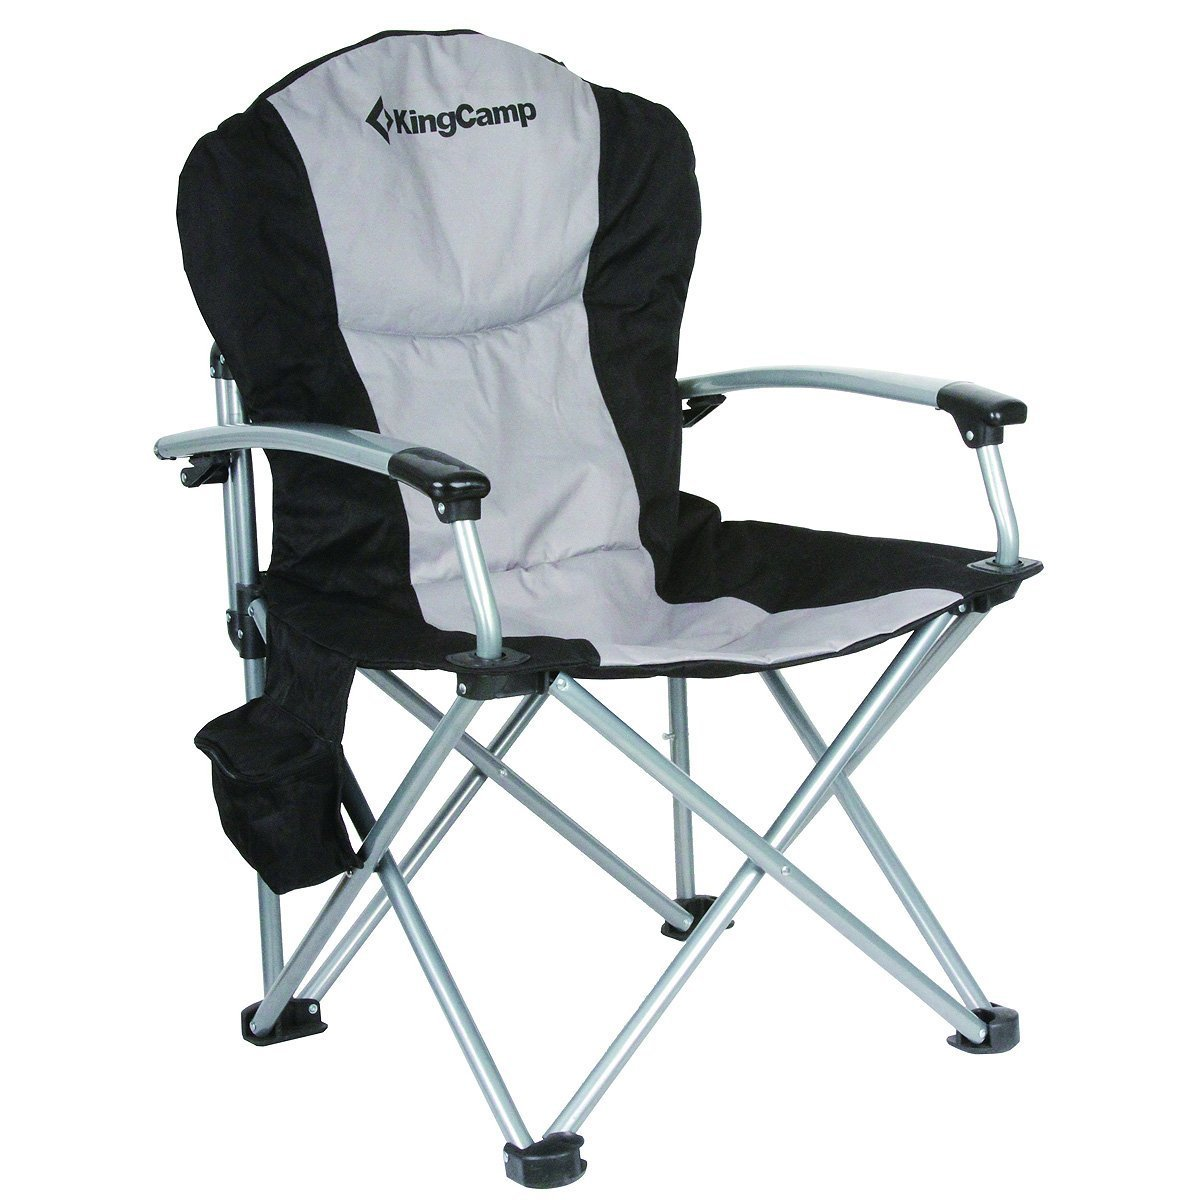 Kingcamp Heavy Duty Hard Arm Padded Steel Folding Chair